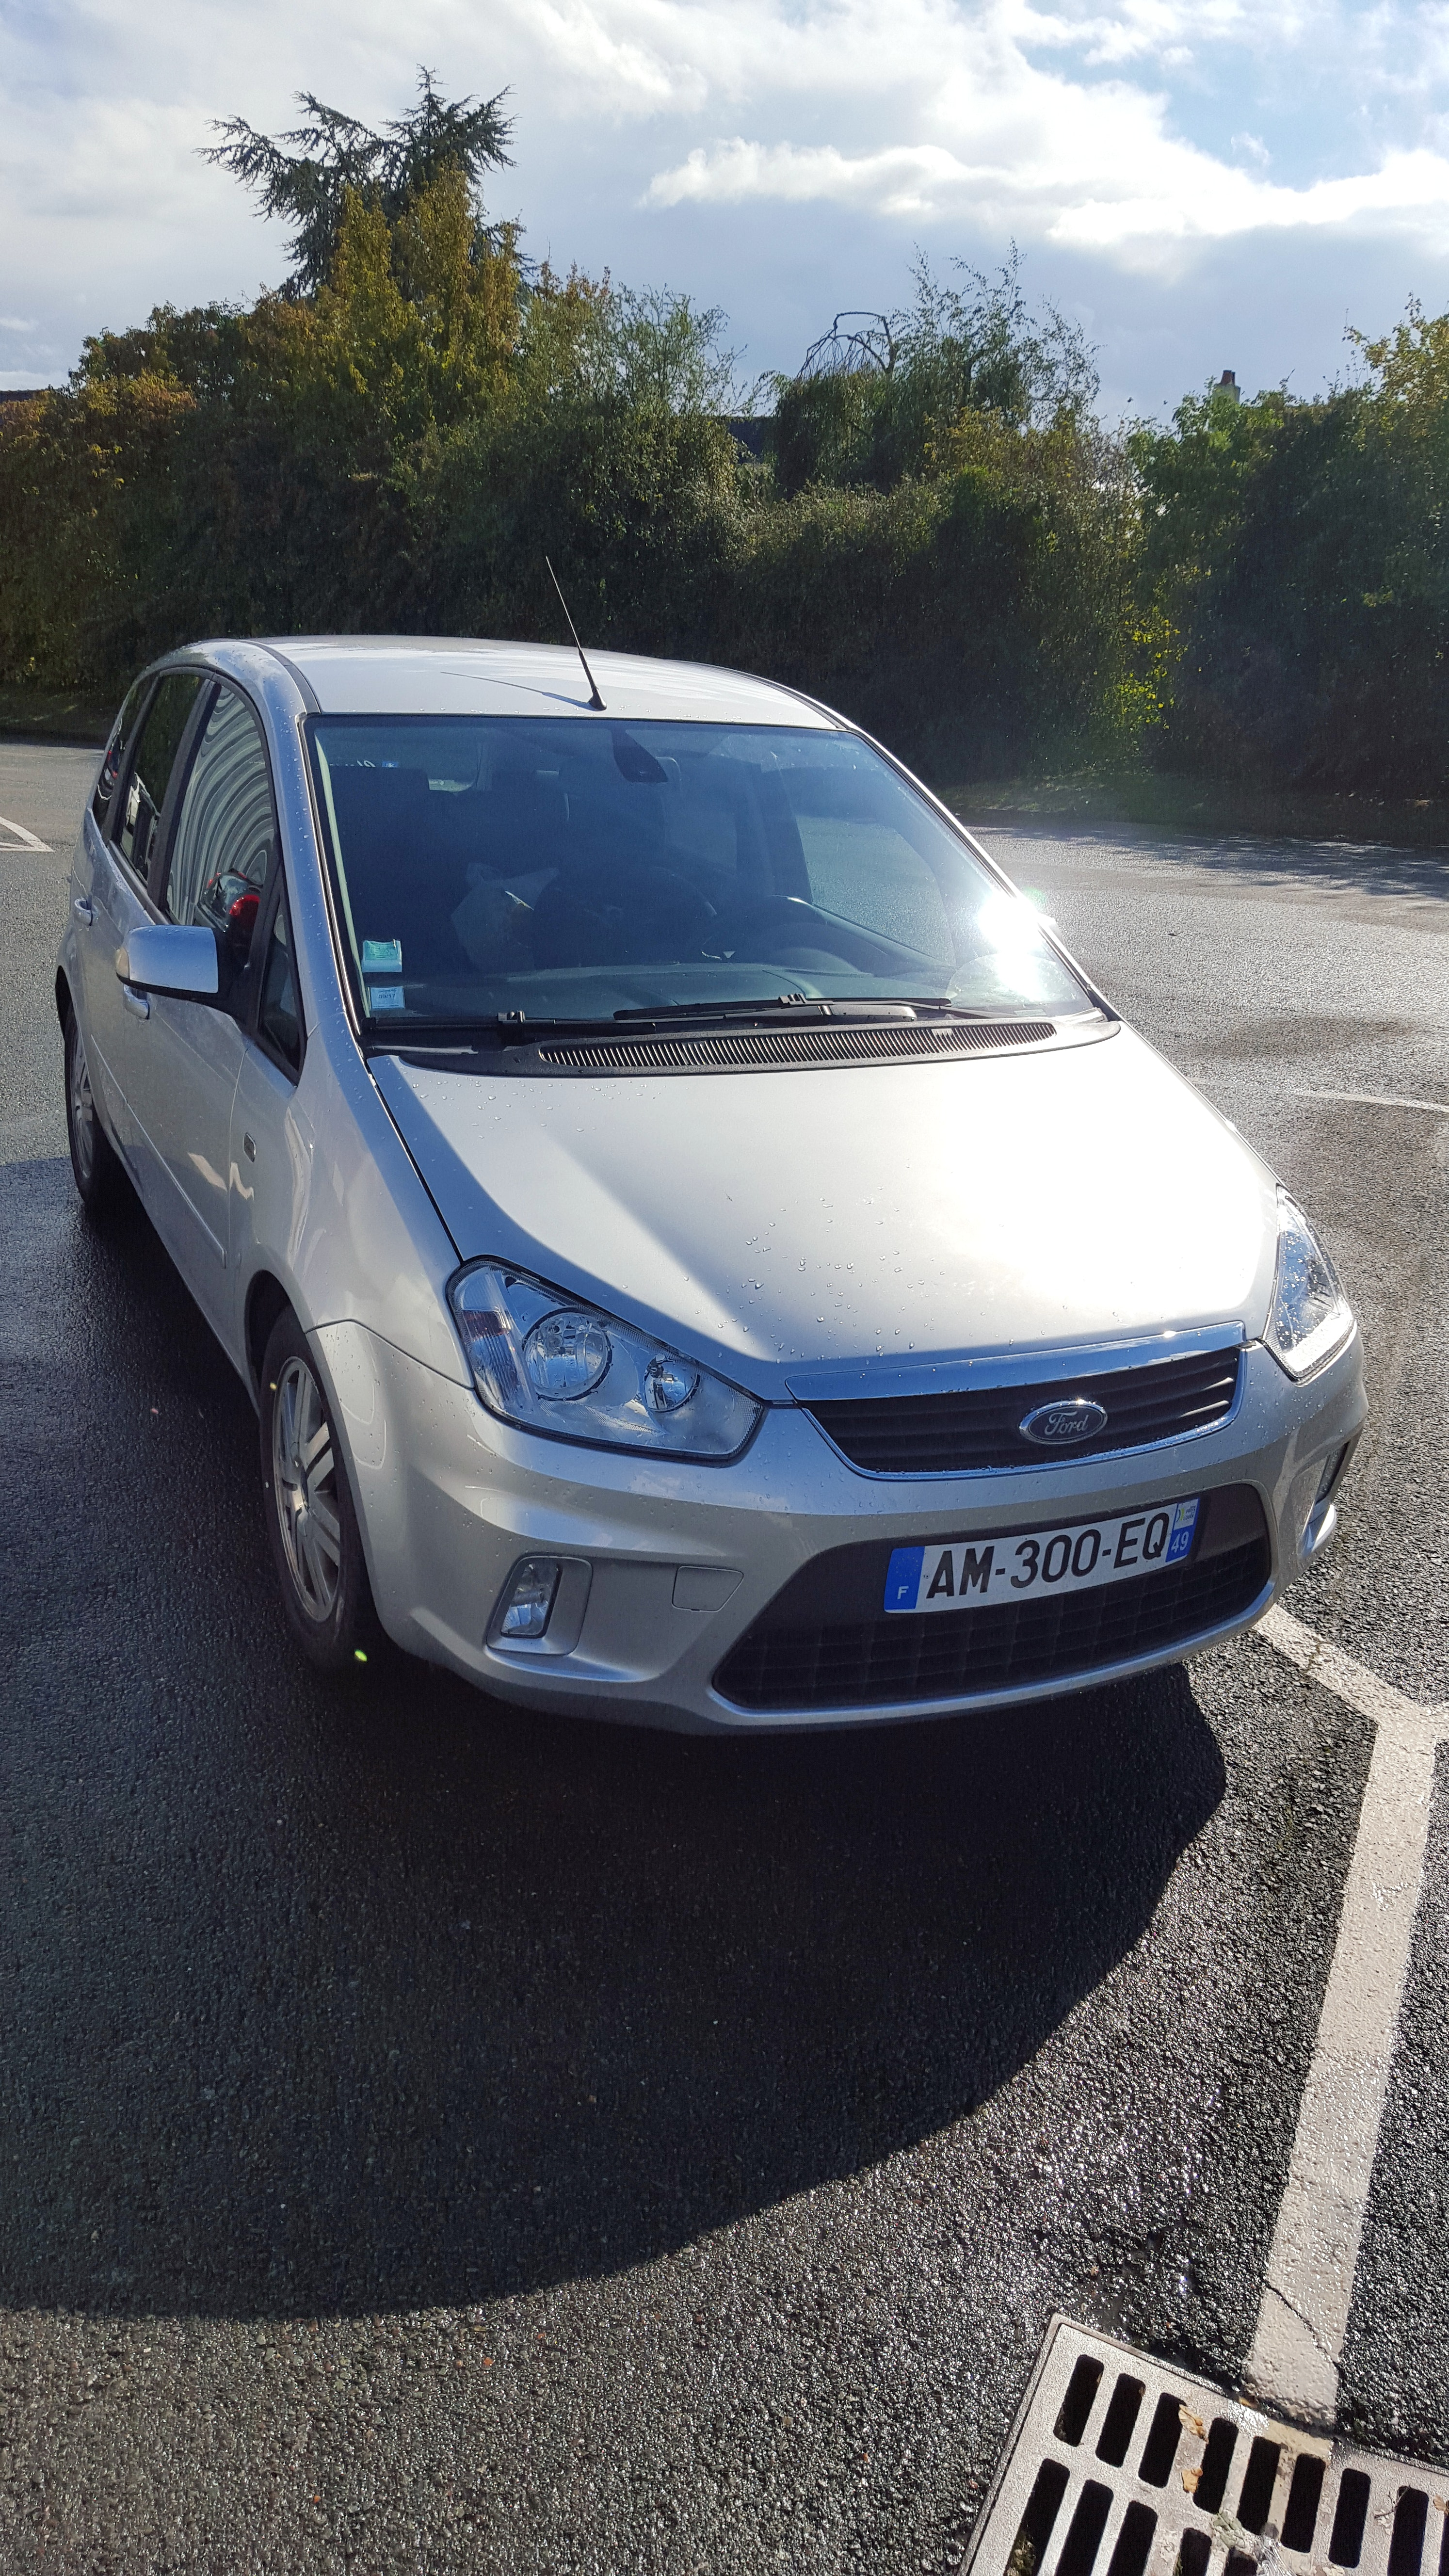 Ford Focus C-Max 110 ch. tdci , 2007, Diesel - Familiale Angers (49)